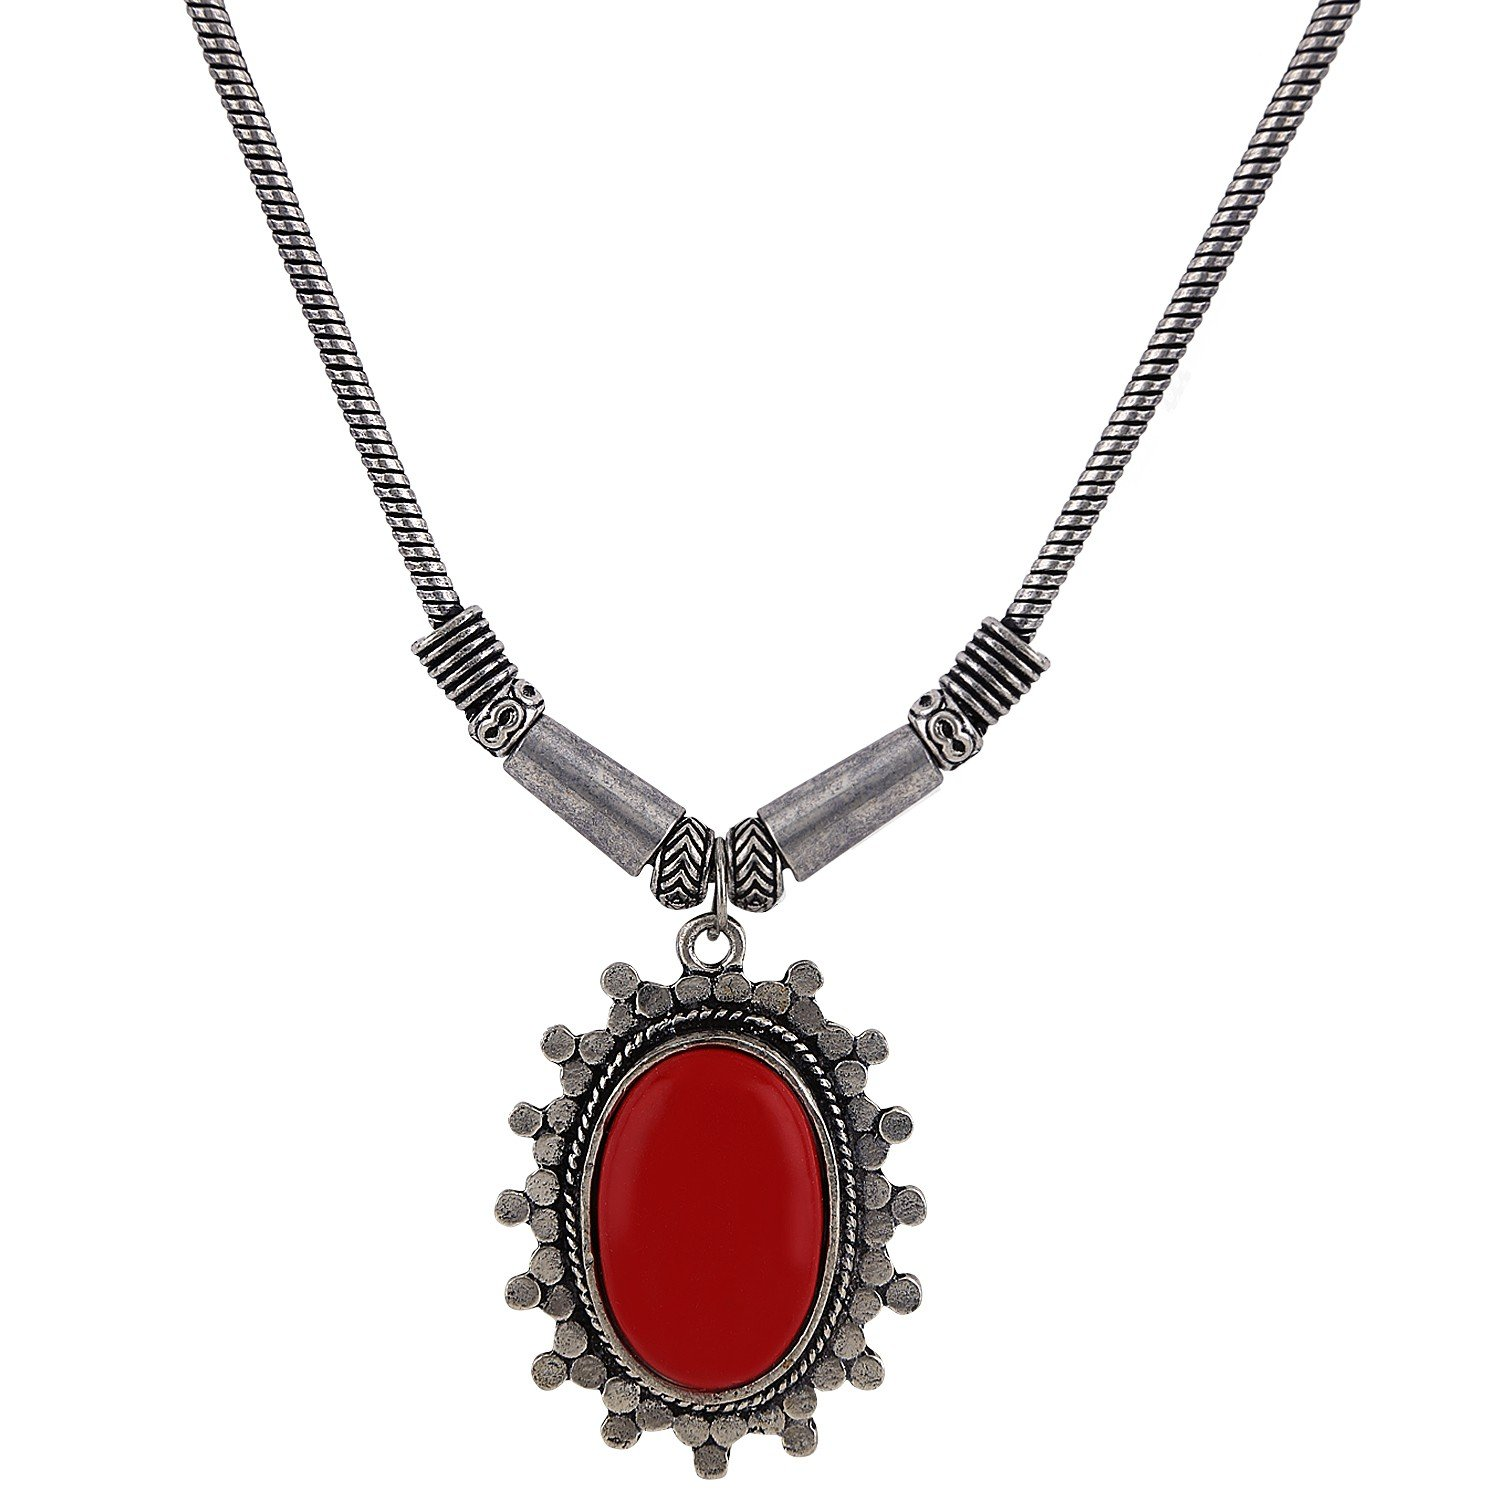 Efulgenz Indian Vintage Retro Ethnic Gypsy Oxidized Tone Boho Necklace Jewellery for Girls and Women